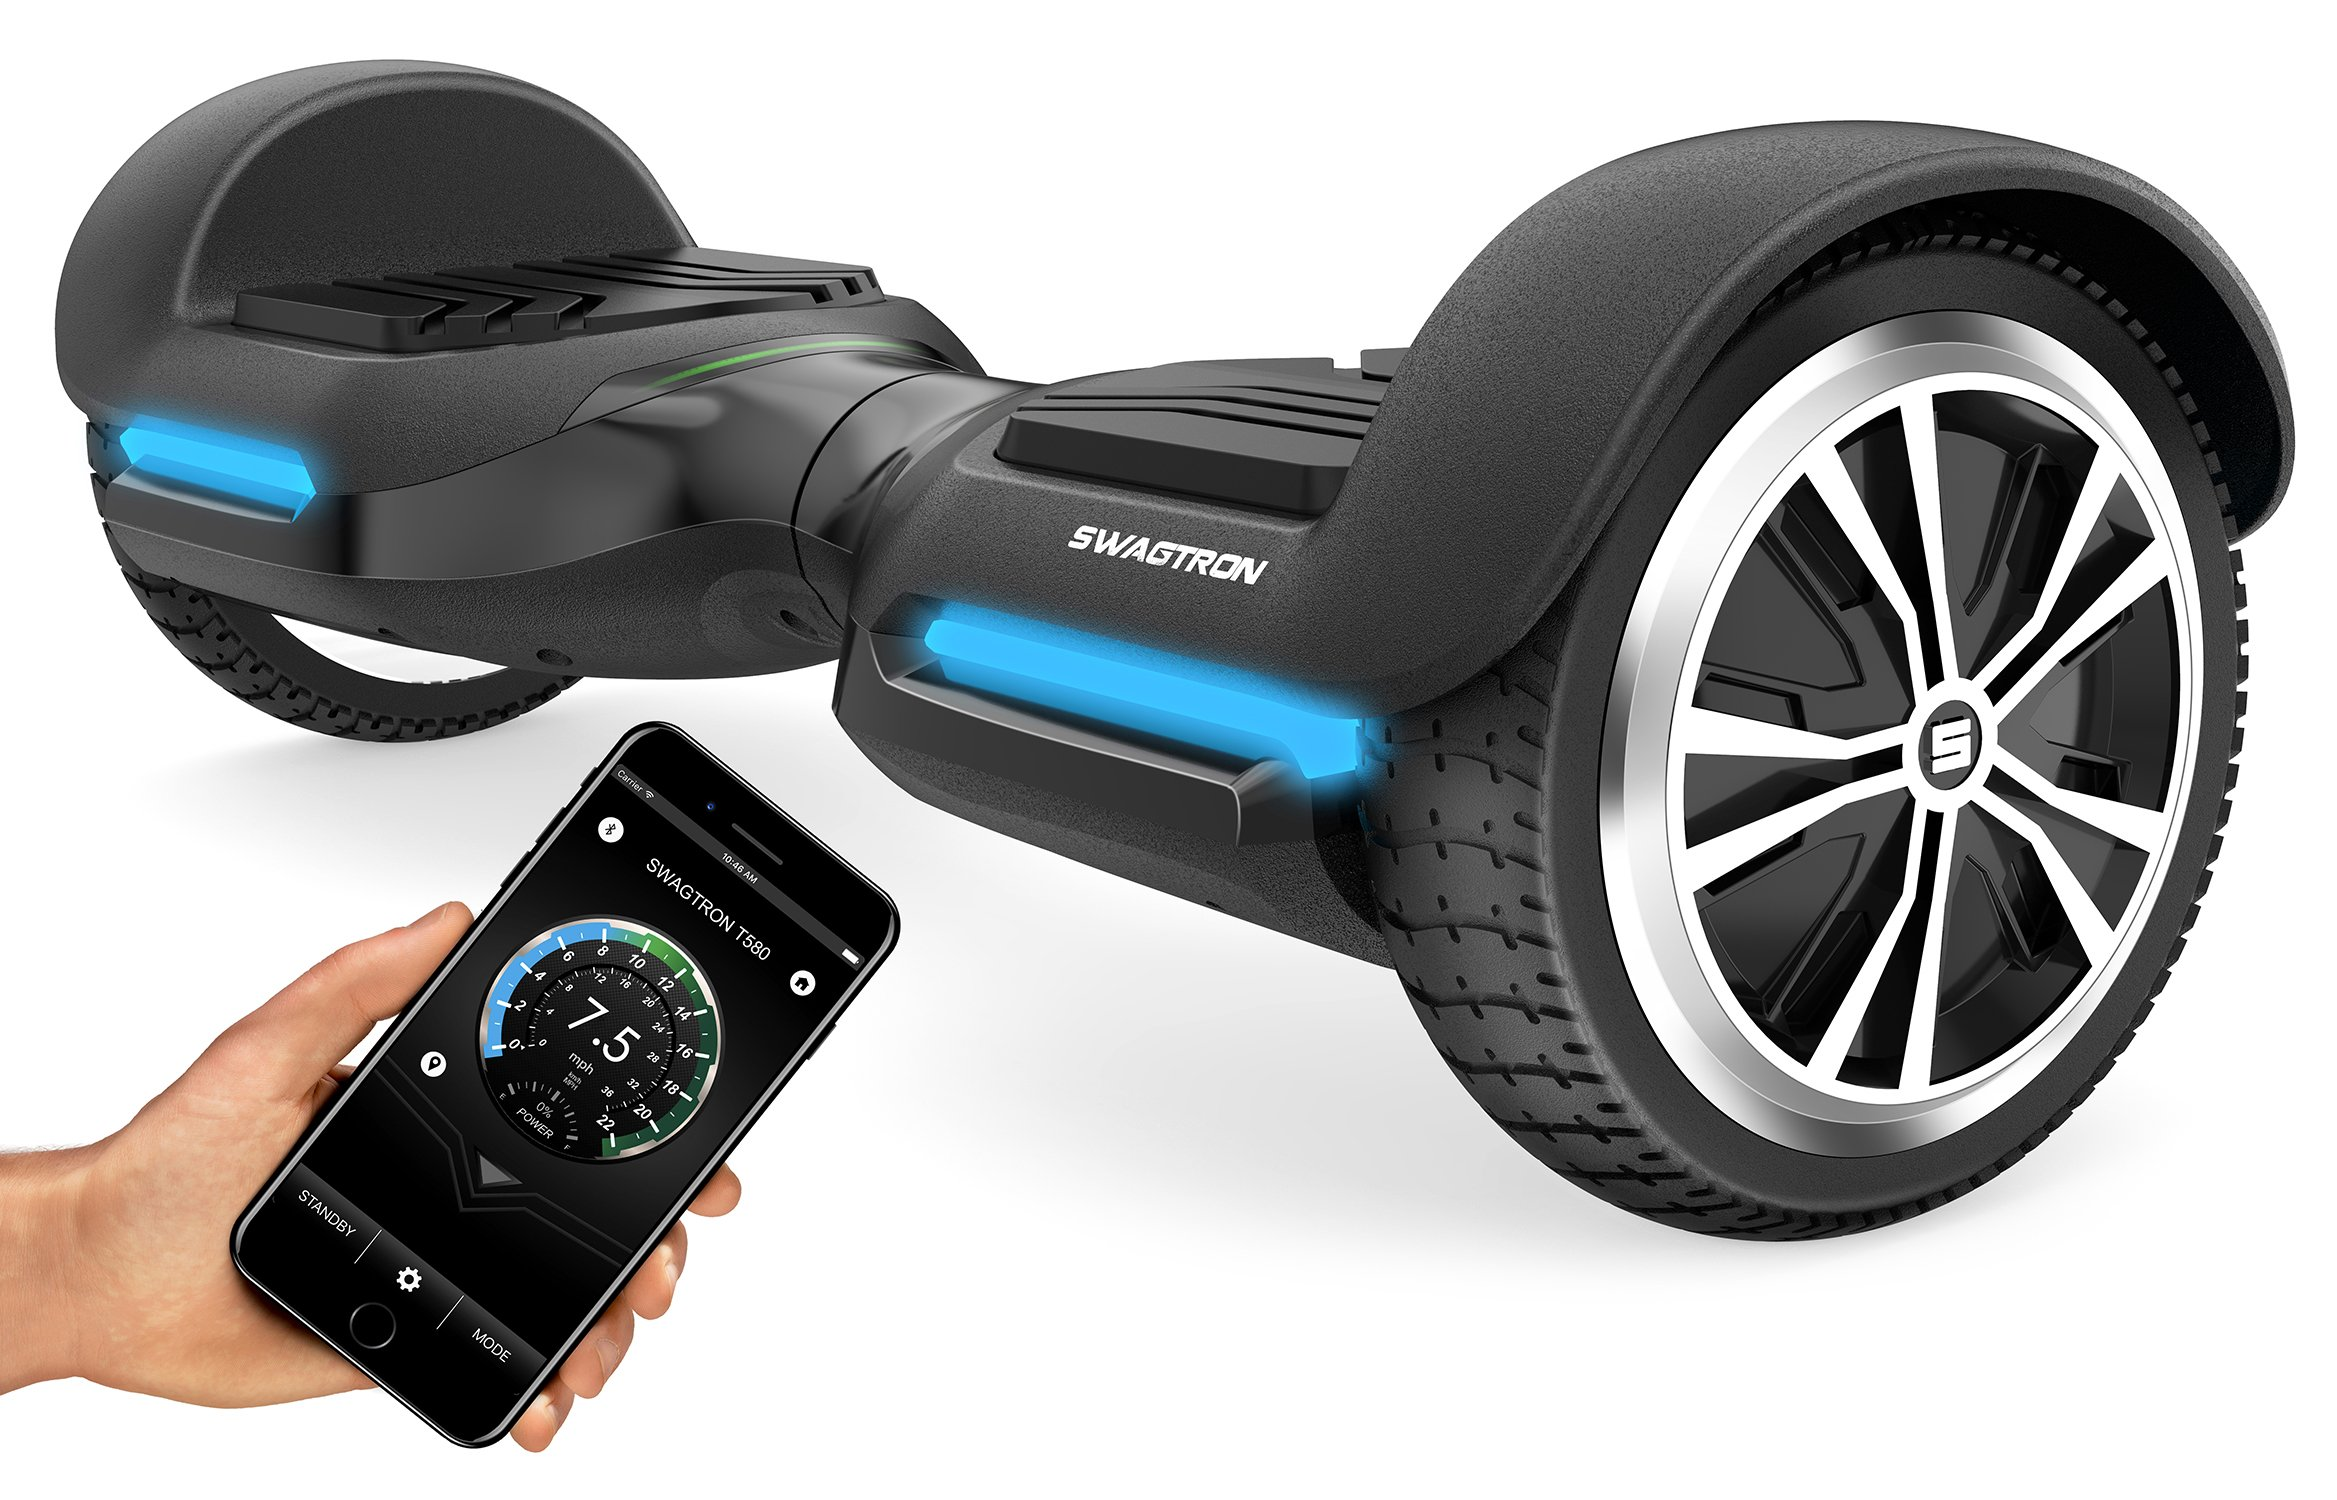 Swagtron T580 App-Enabled Hoverboard w/Speaker Smart Self-Balancing Wheel - Available on iPhone & Android by Swagtron